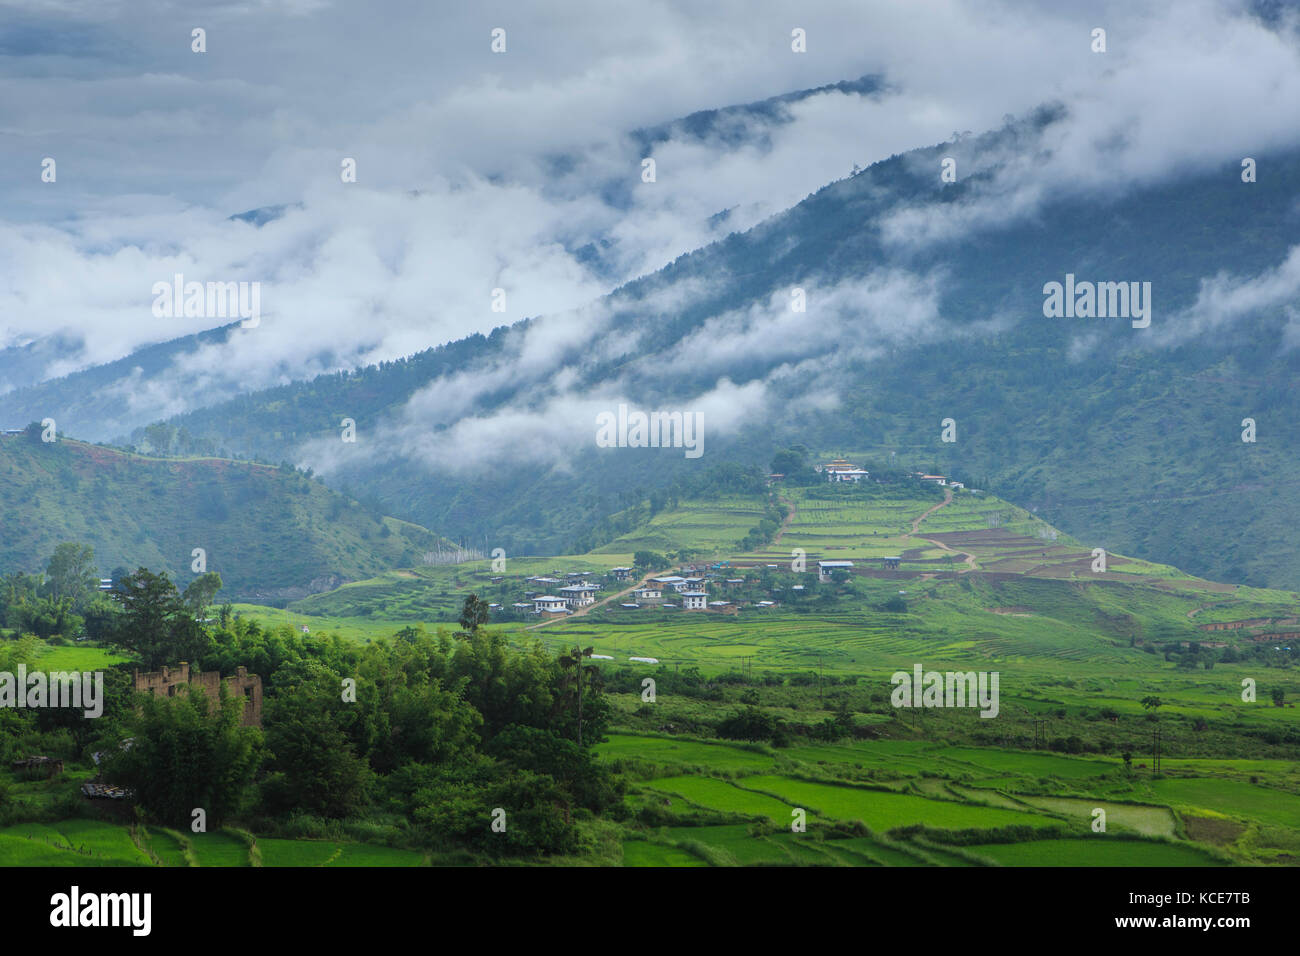 Punakha Valley, Bhutan, is a fertile area of rice fields surrounded by steep mountains - Stock Image